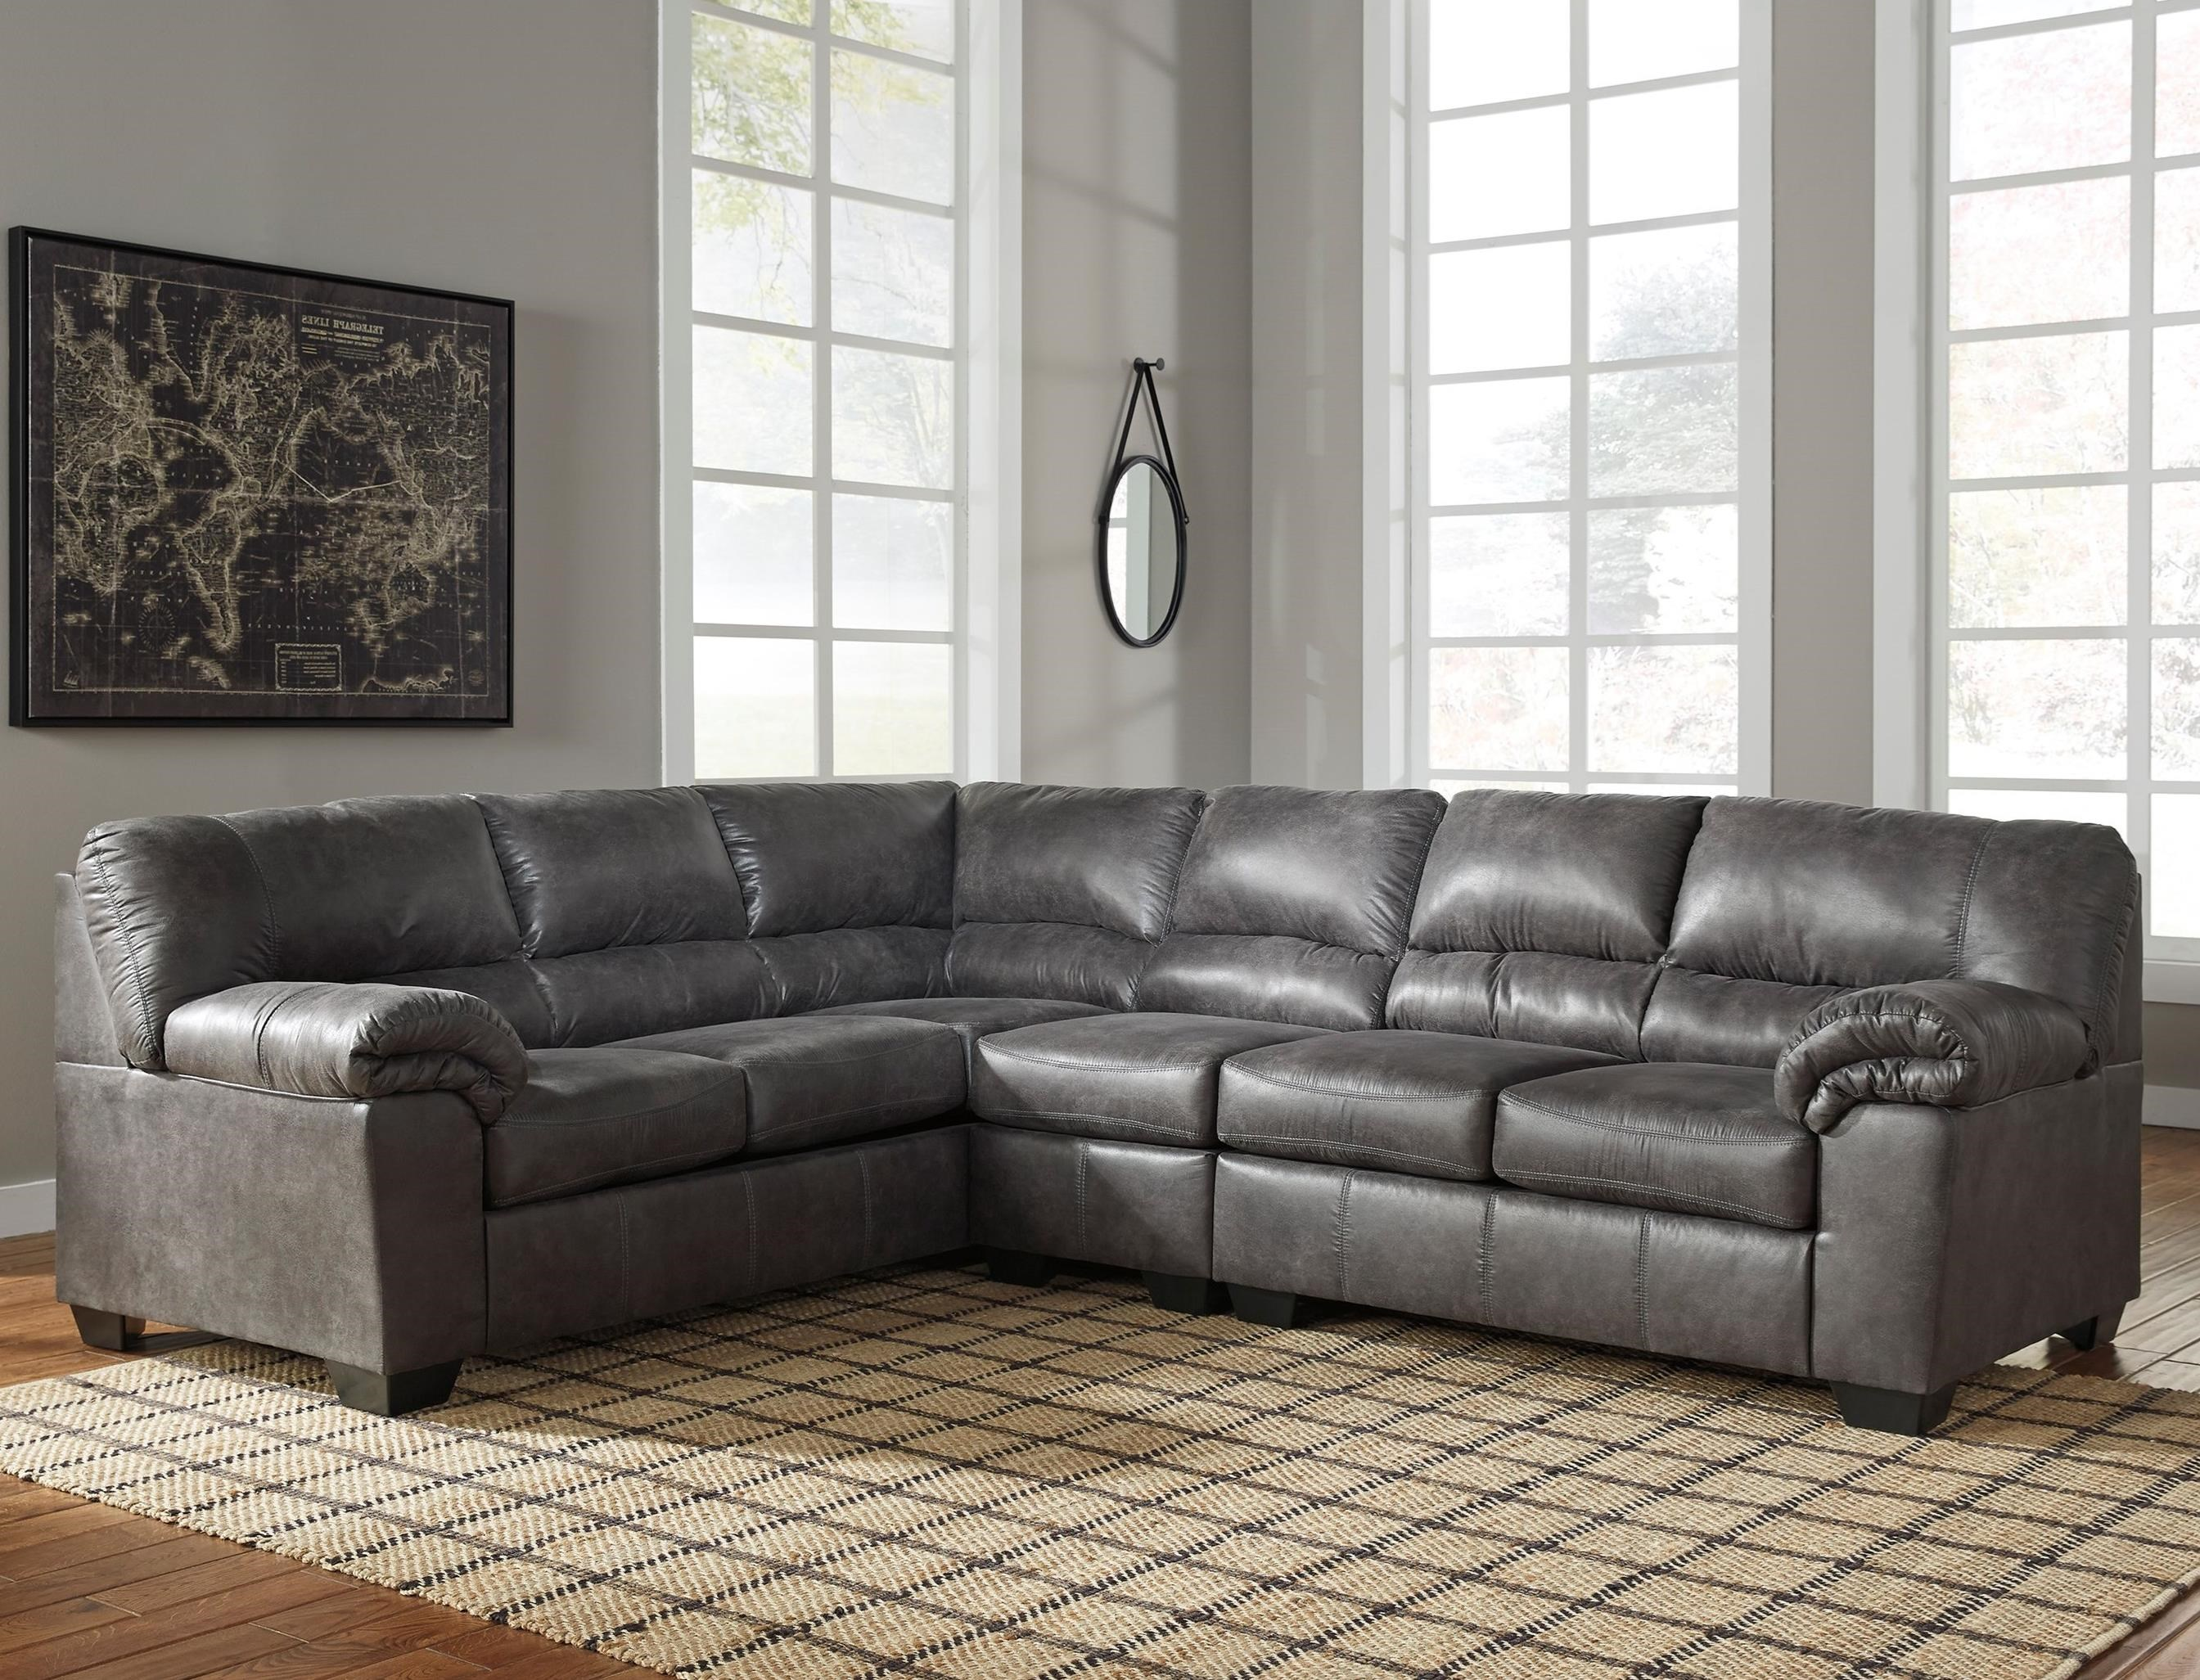 liberty 2 piece sofa and motion loveseat group in grey smith brothers leather ashley signature design bladen 3 faux